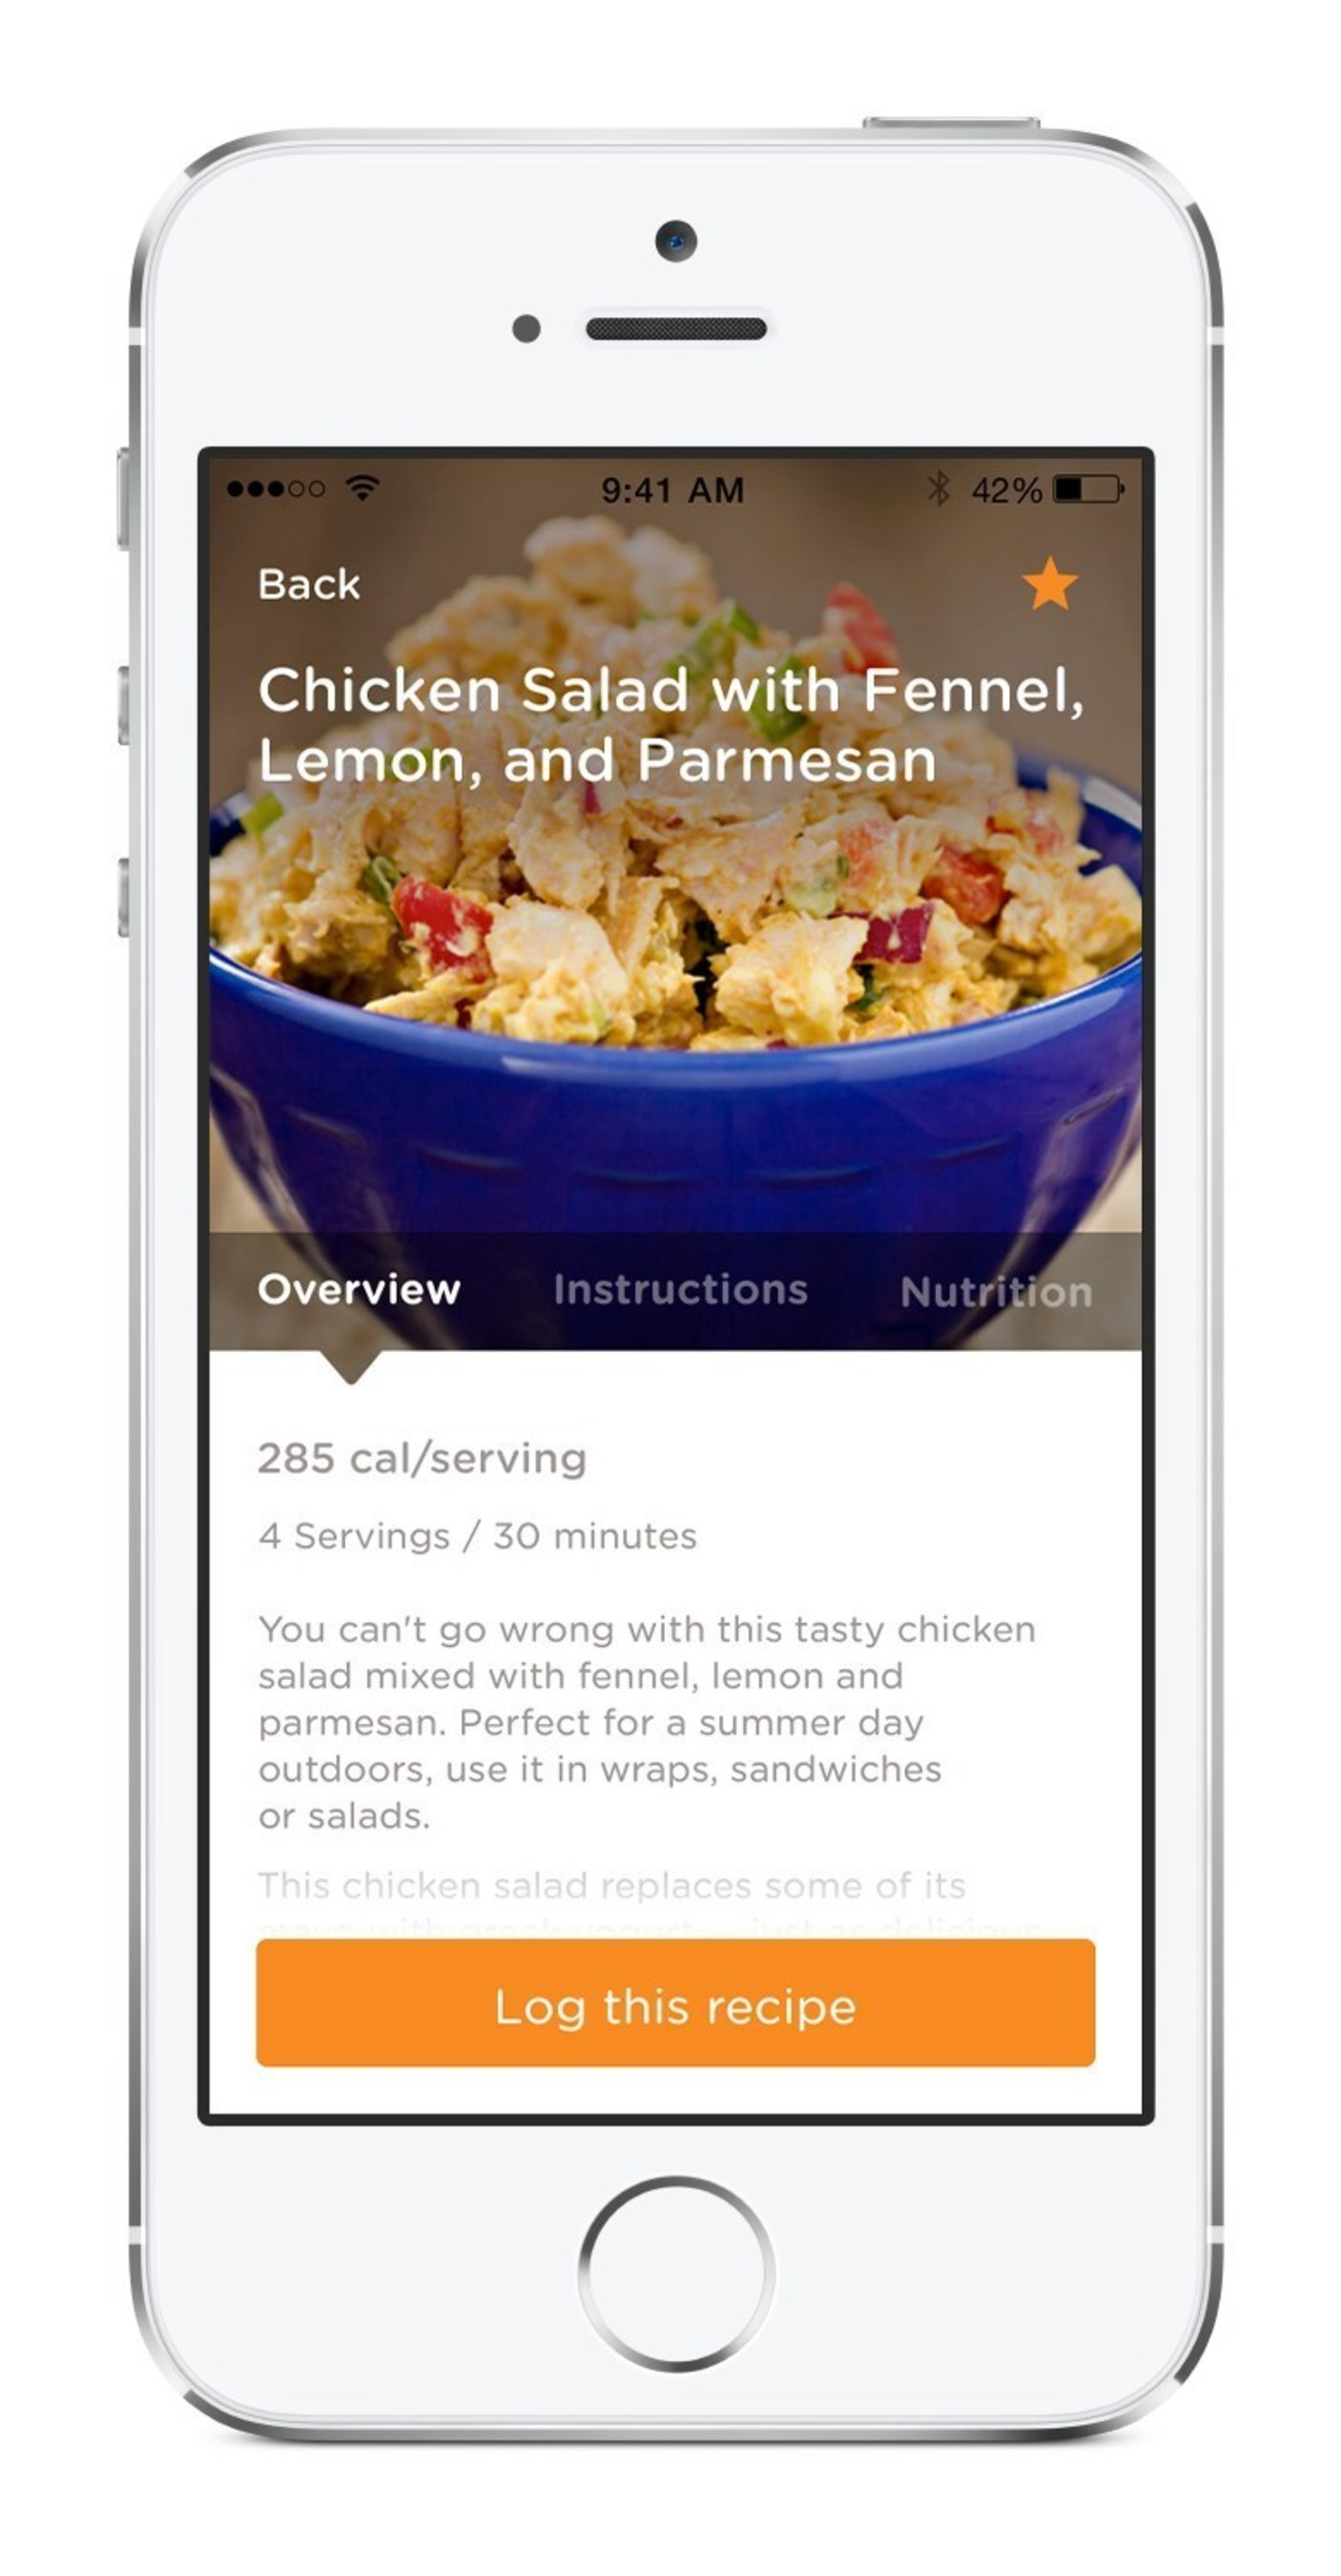 Healthy recipes from Rodale Inc on the Noom Coach weight loss app.